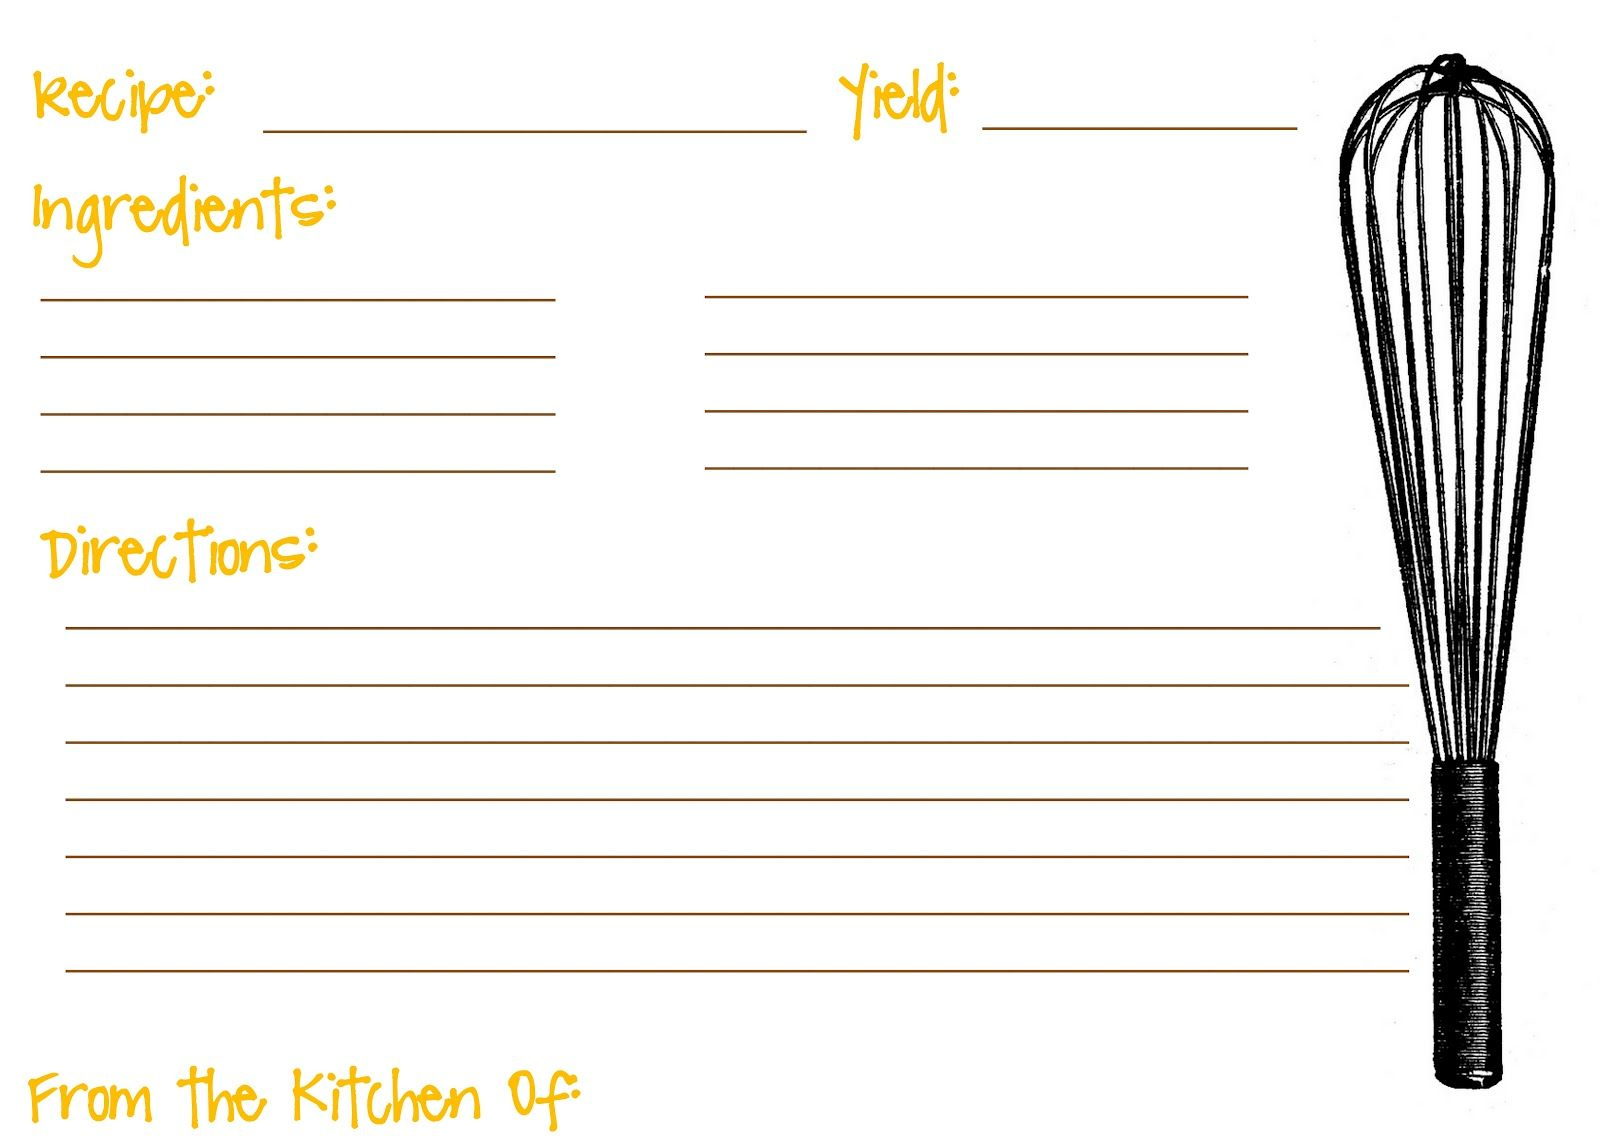 Scooter cakes free printable recipe cards recipe cards for 5x7 recipe card template for word